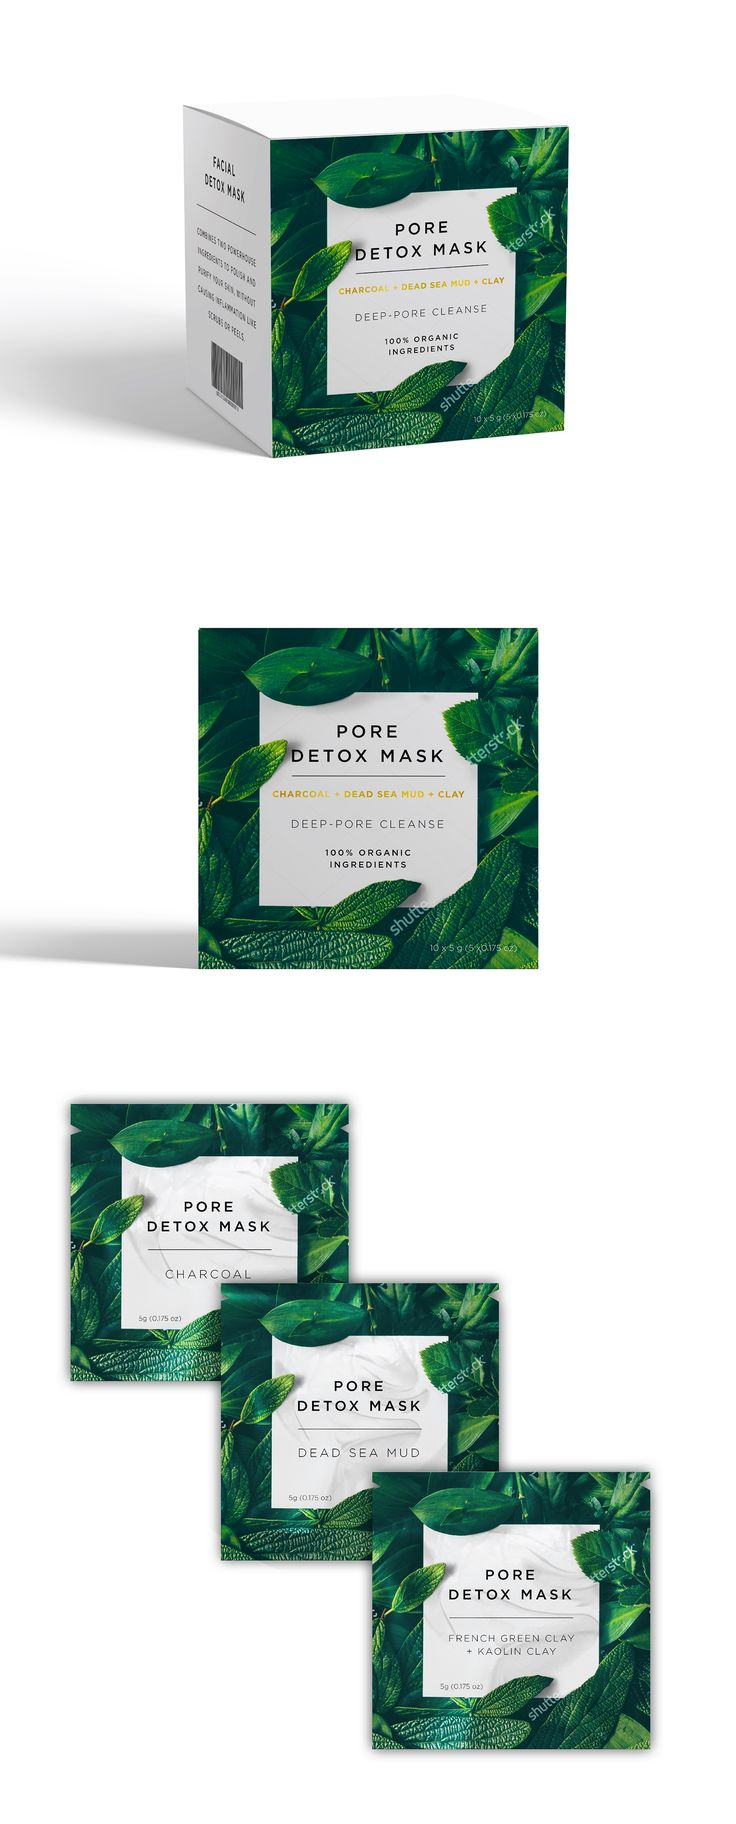 Designs   Design package for Facial detox mask   Product packaging contest